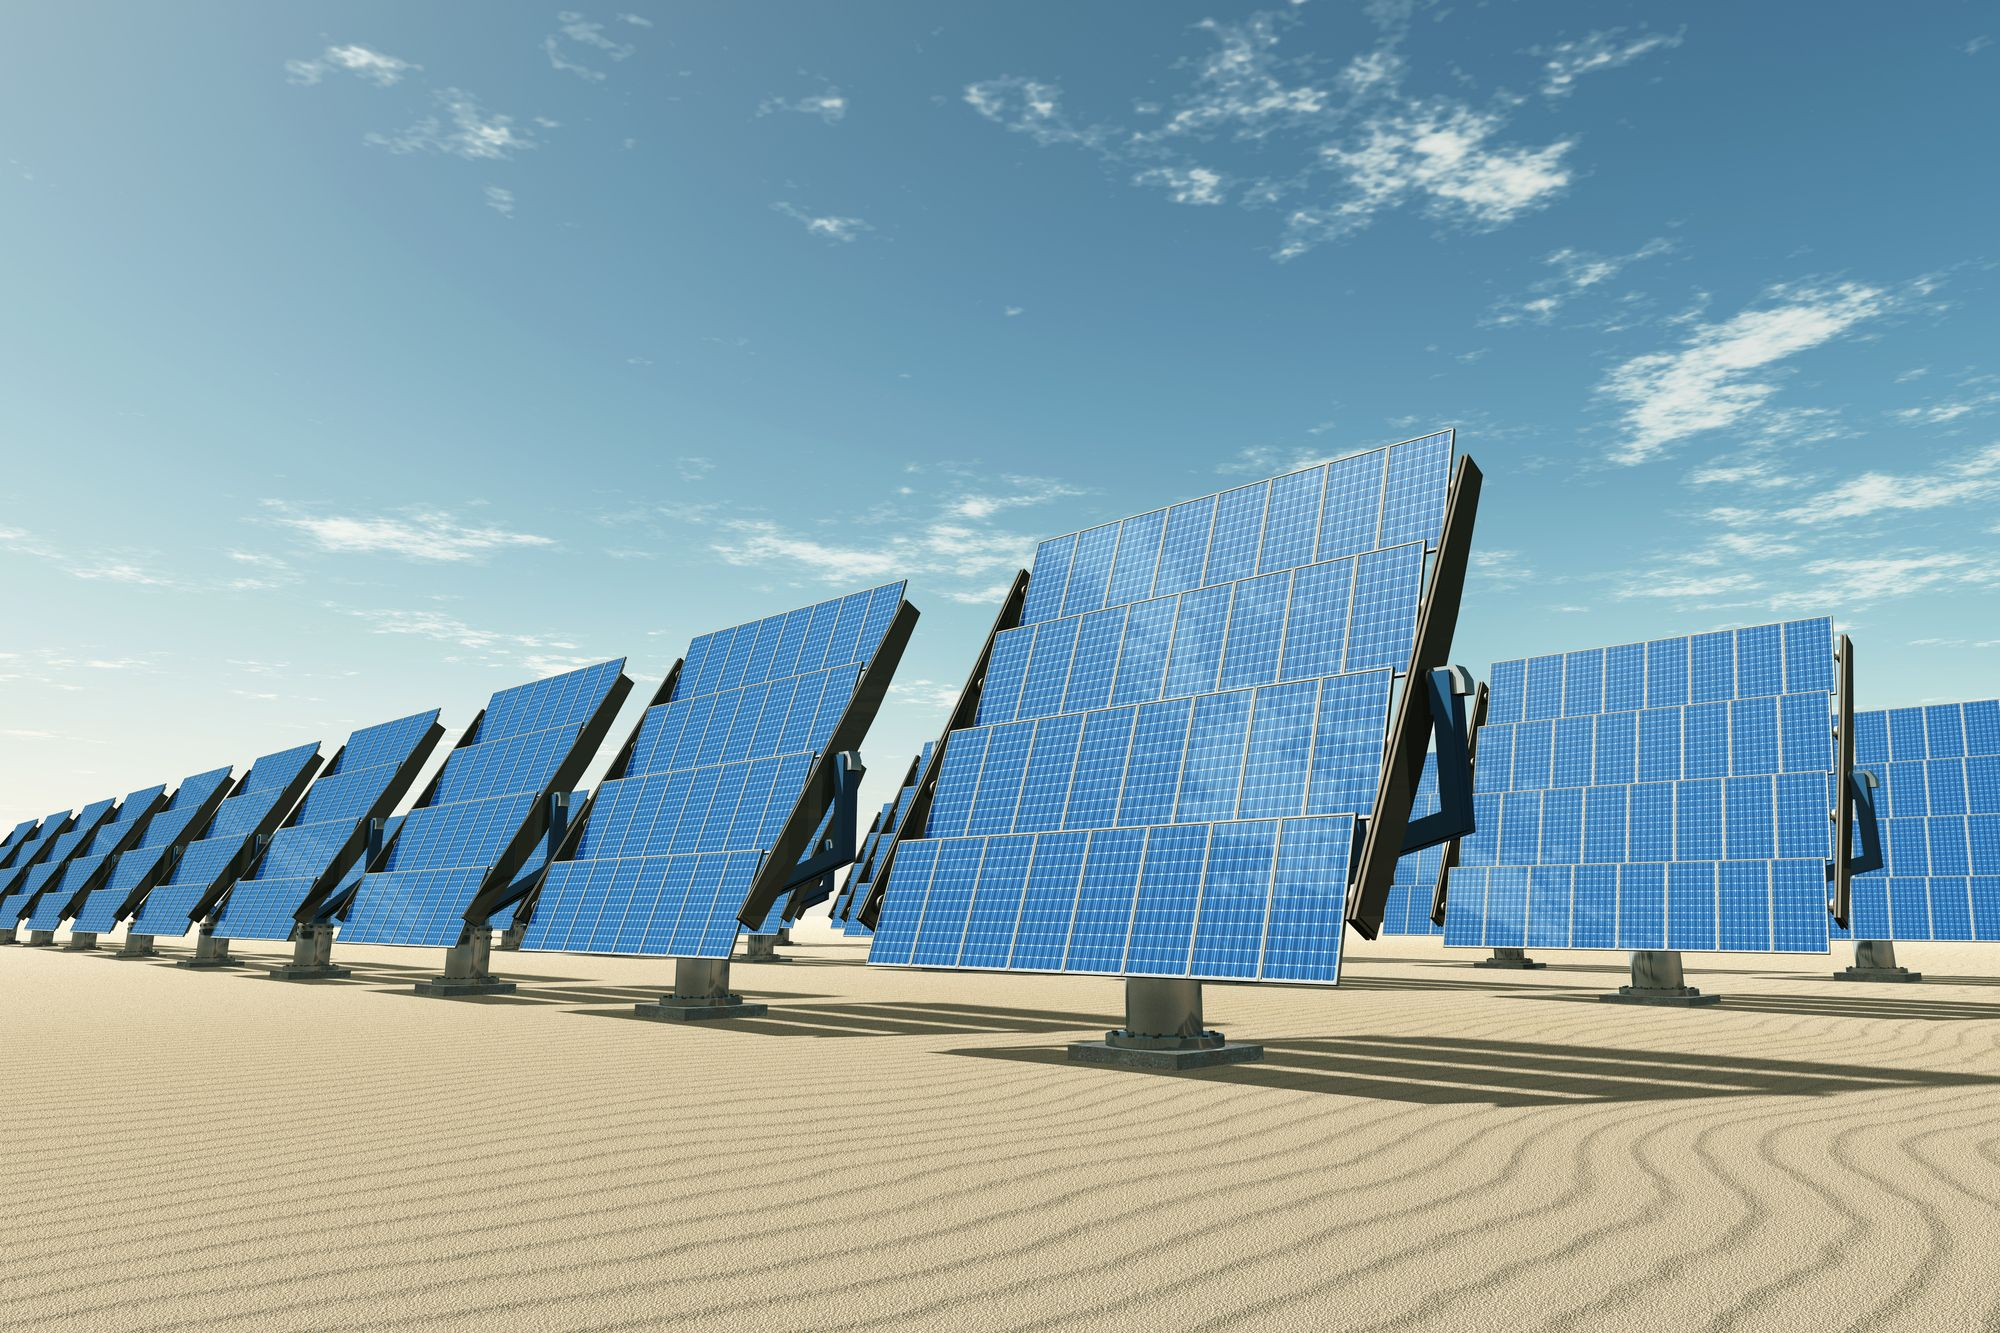 Big Data and Solar Energy Are a Match Made in Heaven